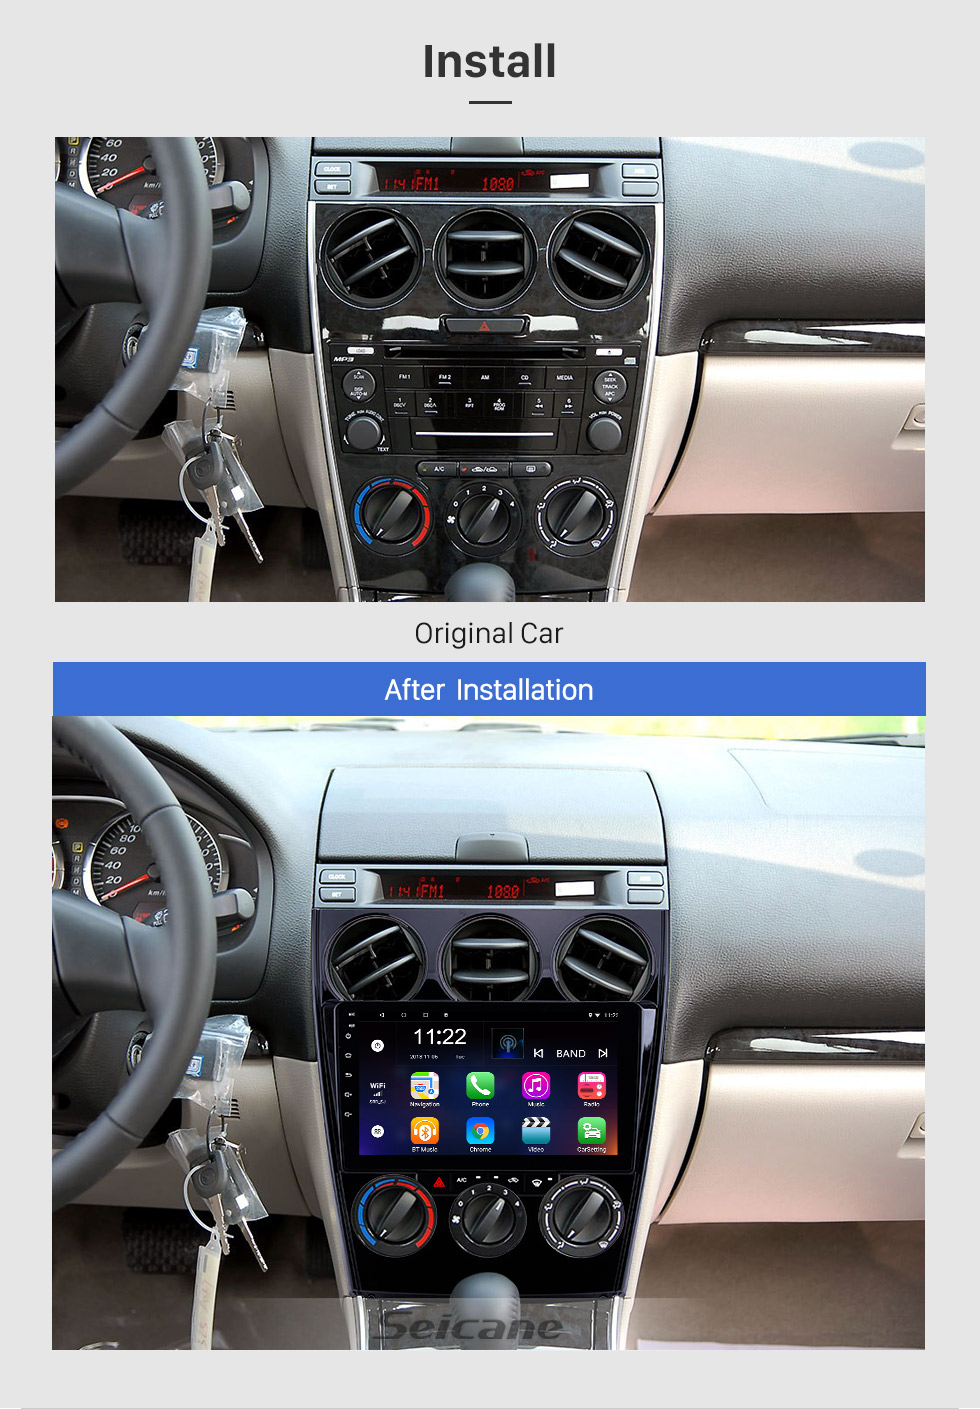 Seicane 2004-2015 alter Mazda 6 HD Touchscreen 9 Zoll Android 8.1 Stereo Bluetooth GPS-Navigationsunterstützung Lenkradsteuerung 3G WIFI OBD2 Carplay DVR